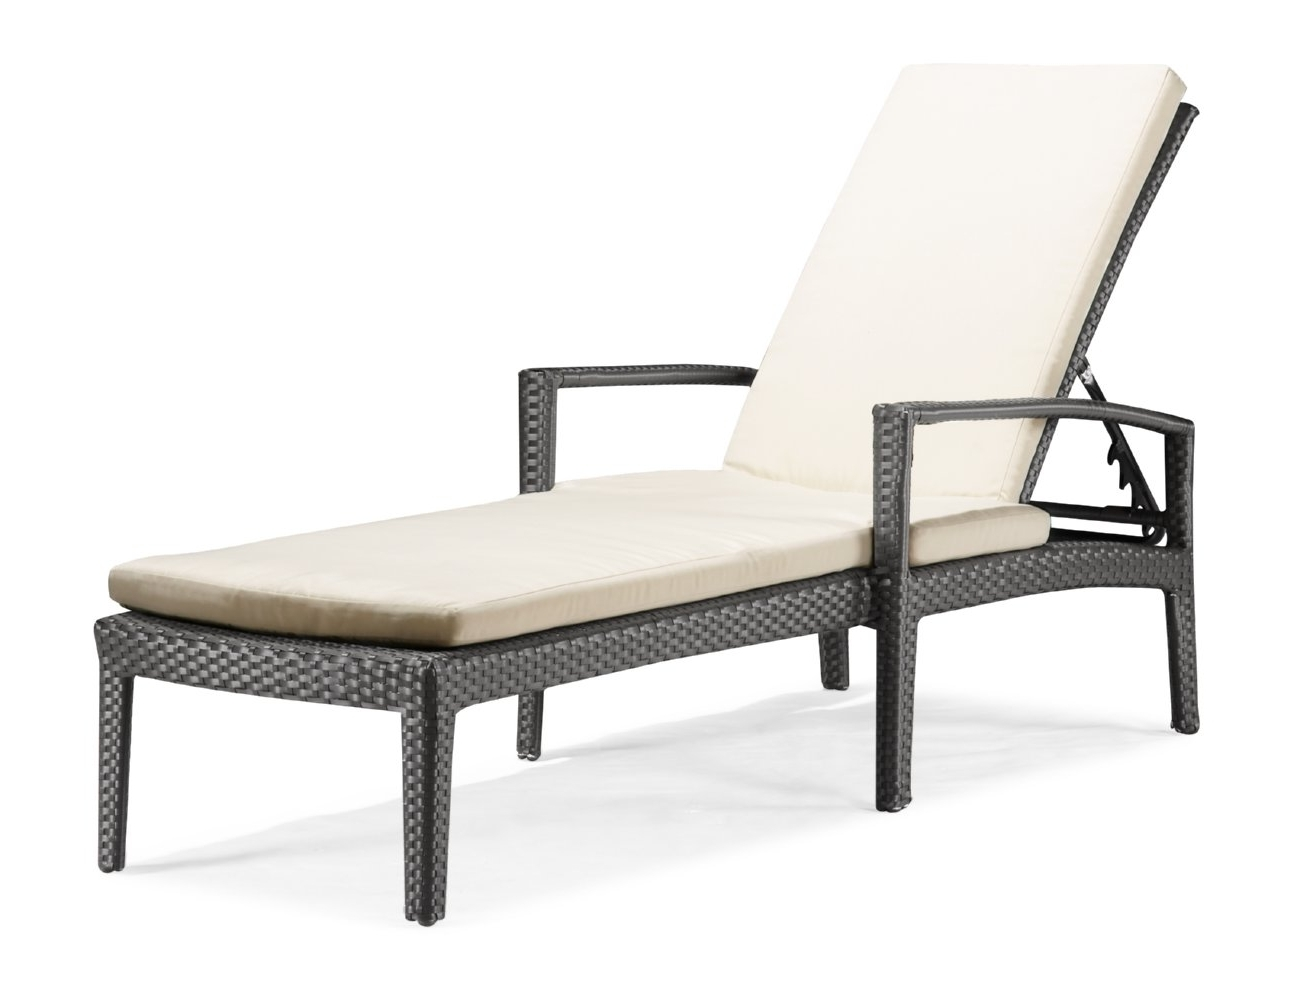 Newest Exotic Chaise Lounge Chairs Regarding Awesome Photos Of Pool Chaise Lounge (View 10 of 15)